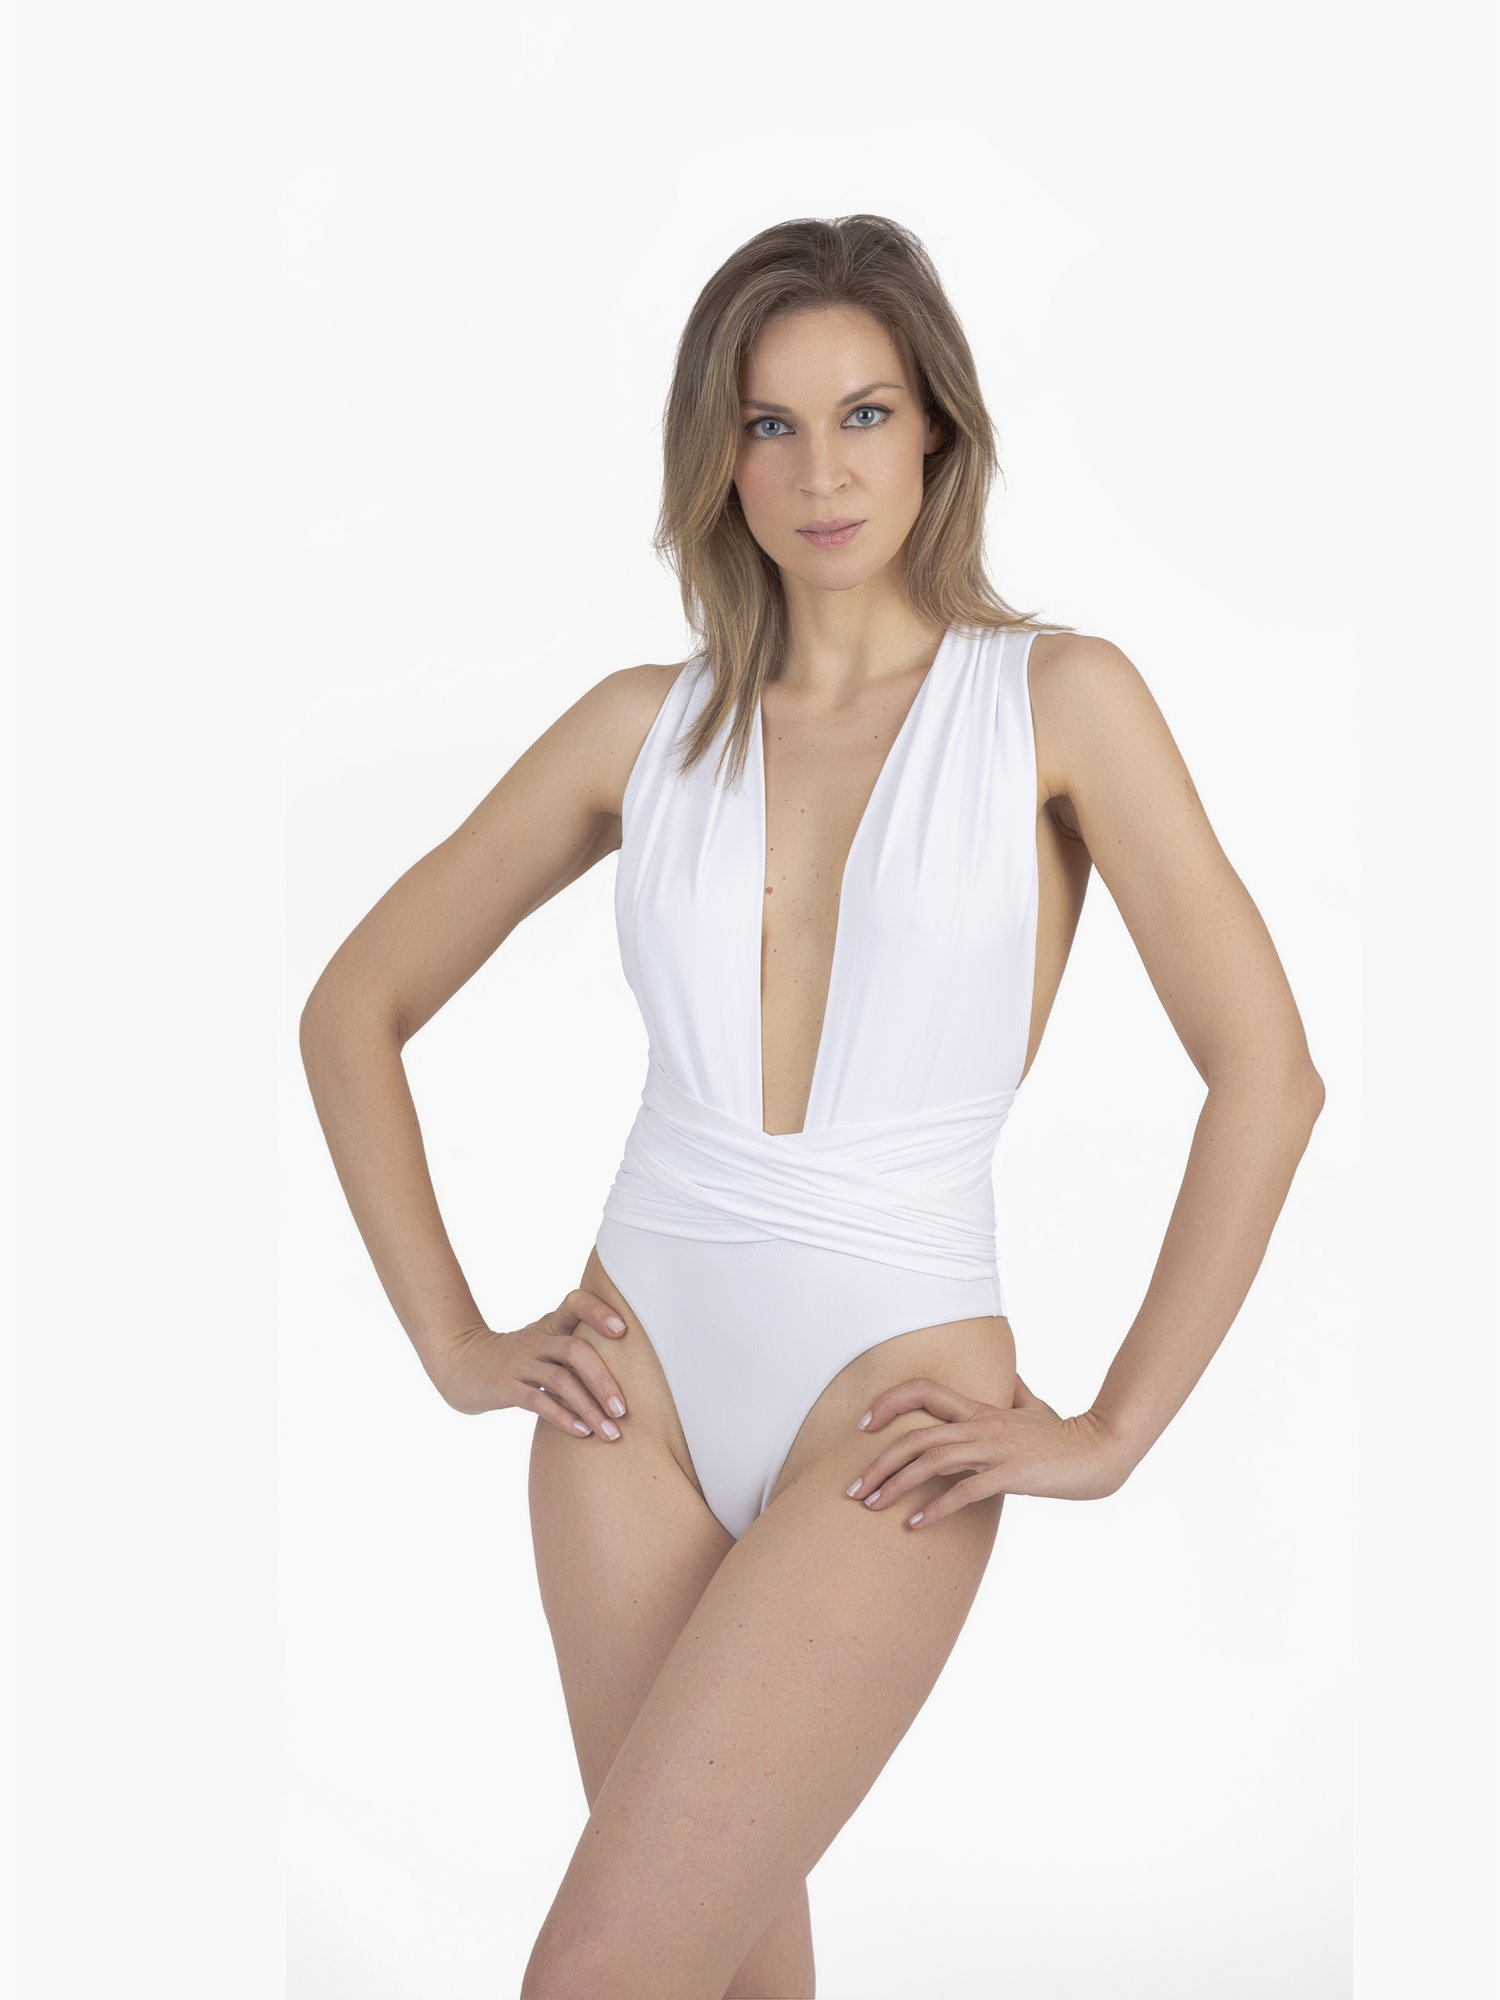 ONE-PIECE SWIMSUIT WITH SASH - Bianco White 001